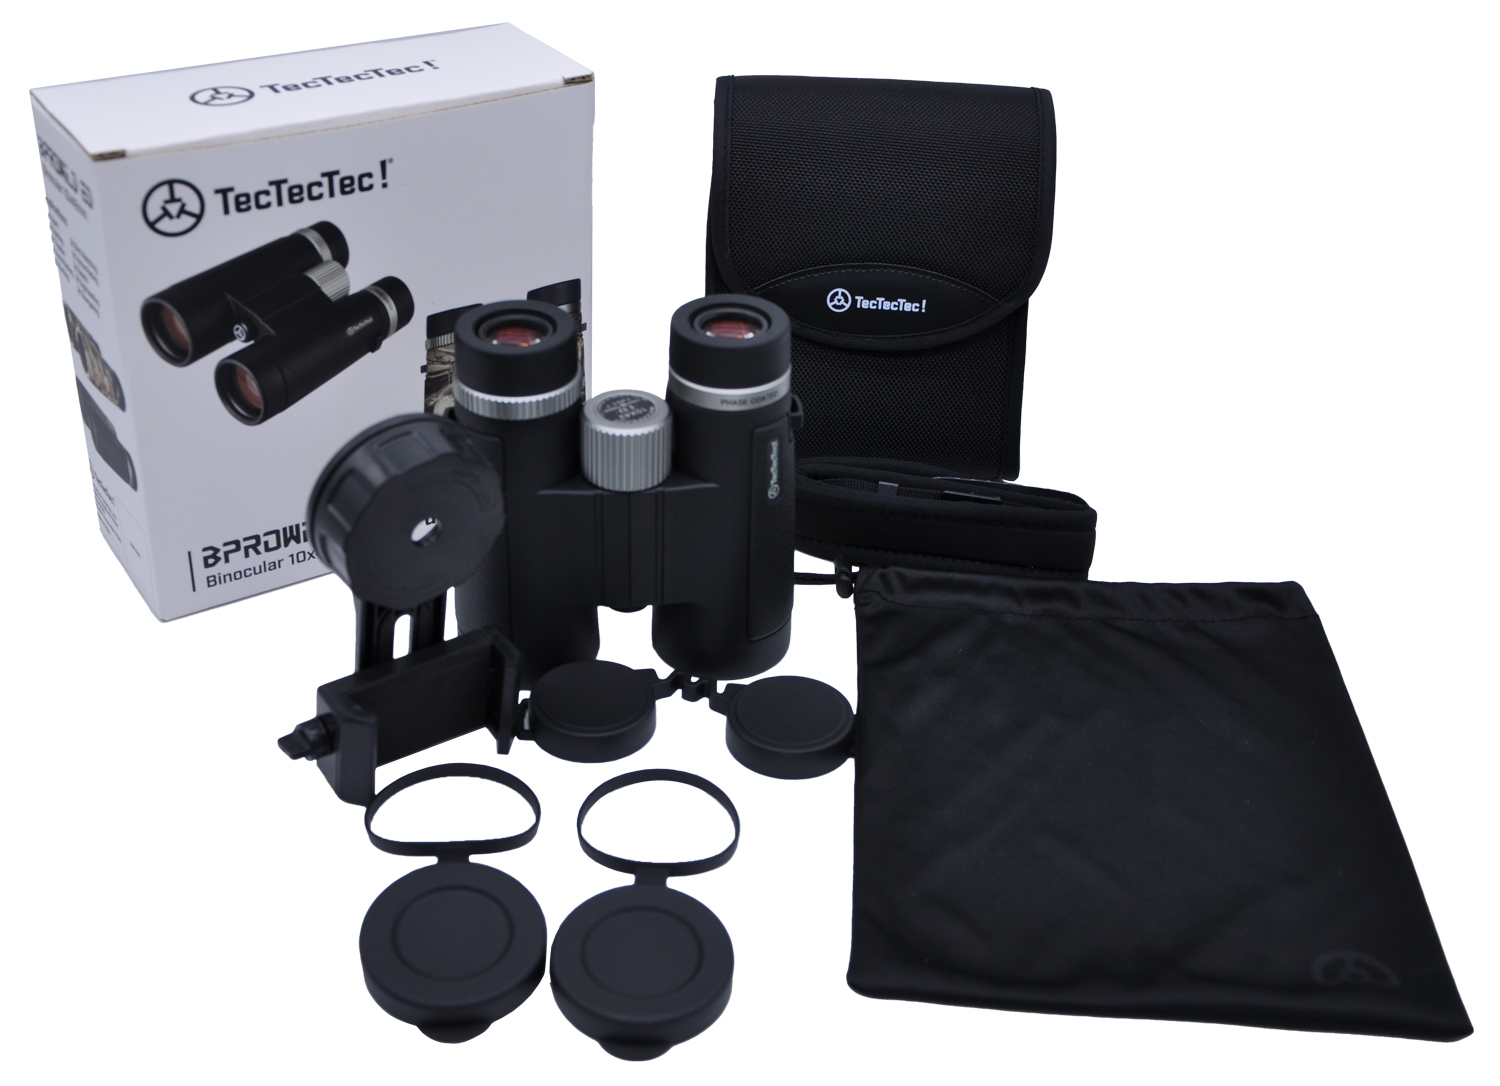 BPROWILD ED BLACK With all items and packaging